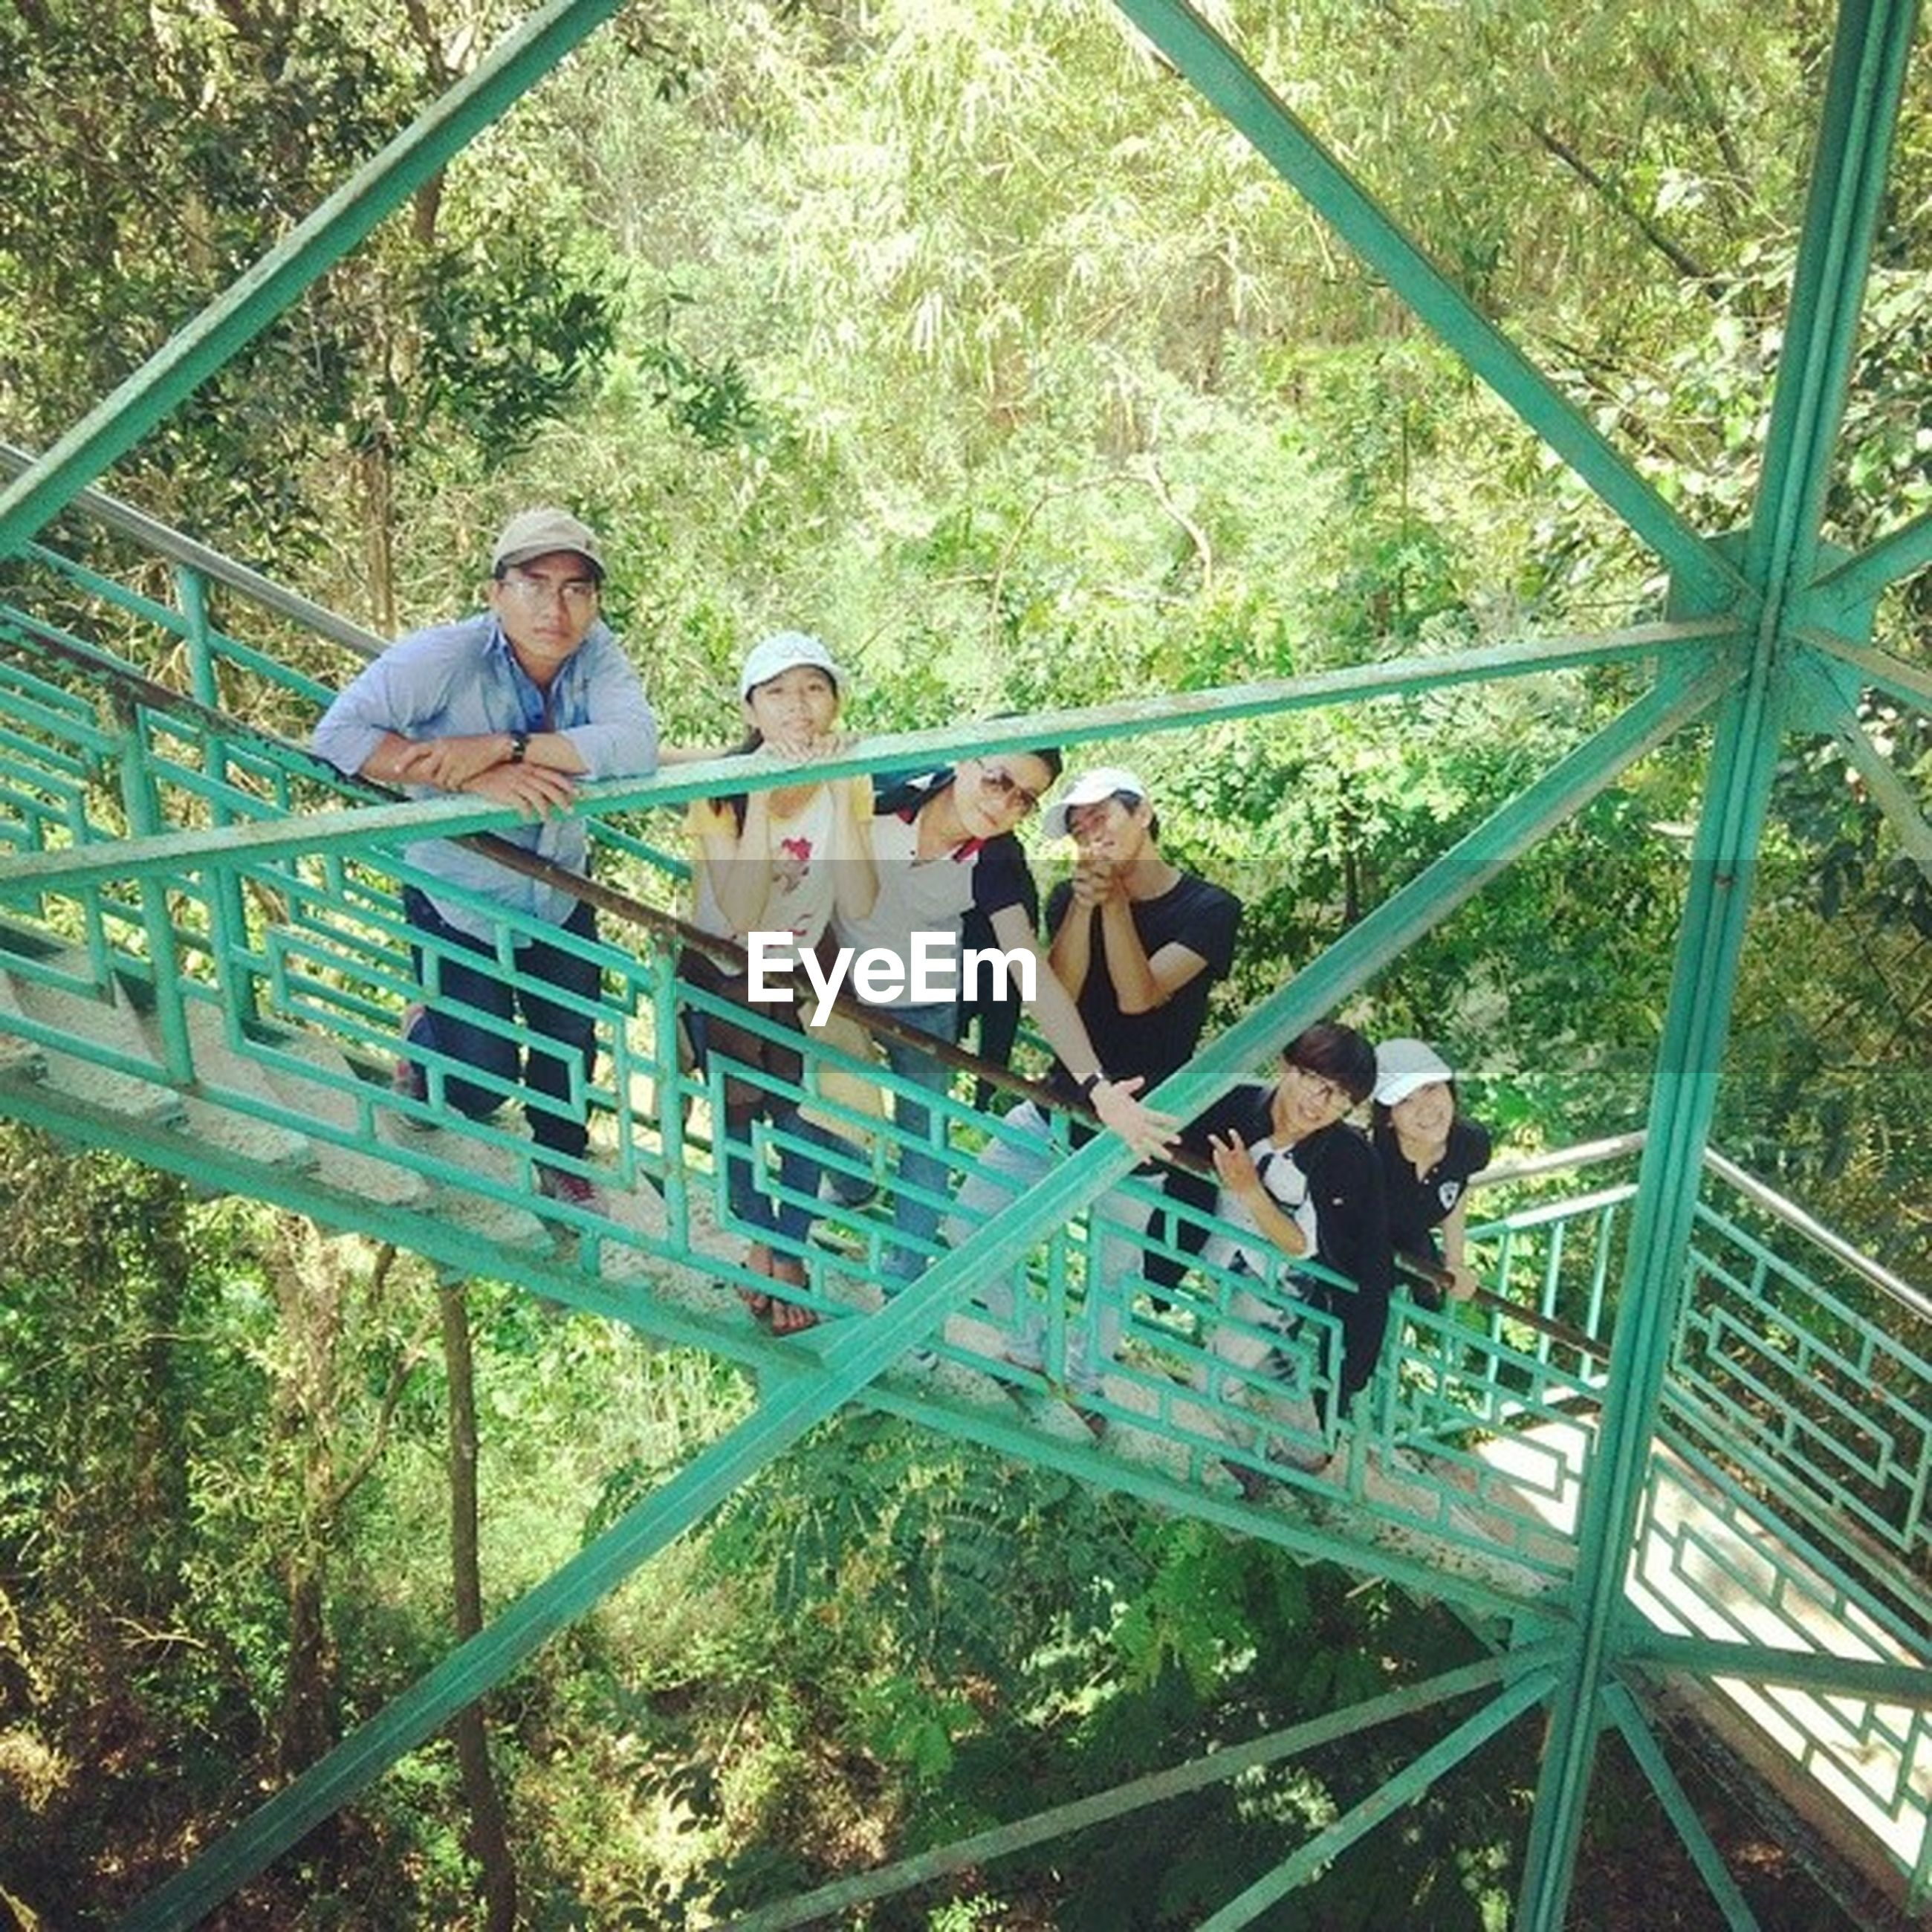 lifestyles, leisure activity, casual clothing, railing, men, togetherness, full length, tree, person, childhood, boys, transportation, high angle view, bonding, standing, connection, elementary age